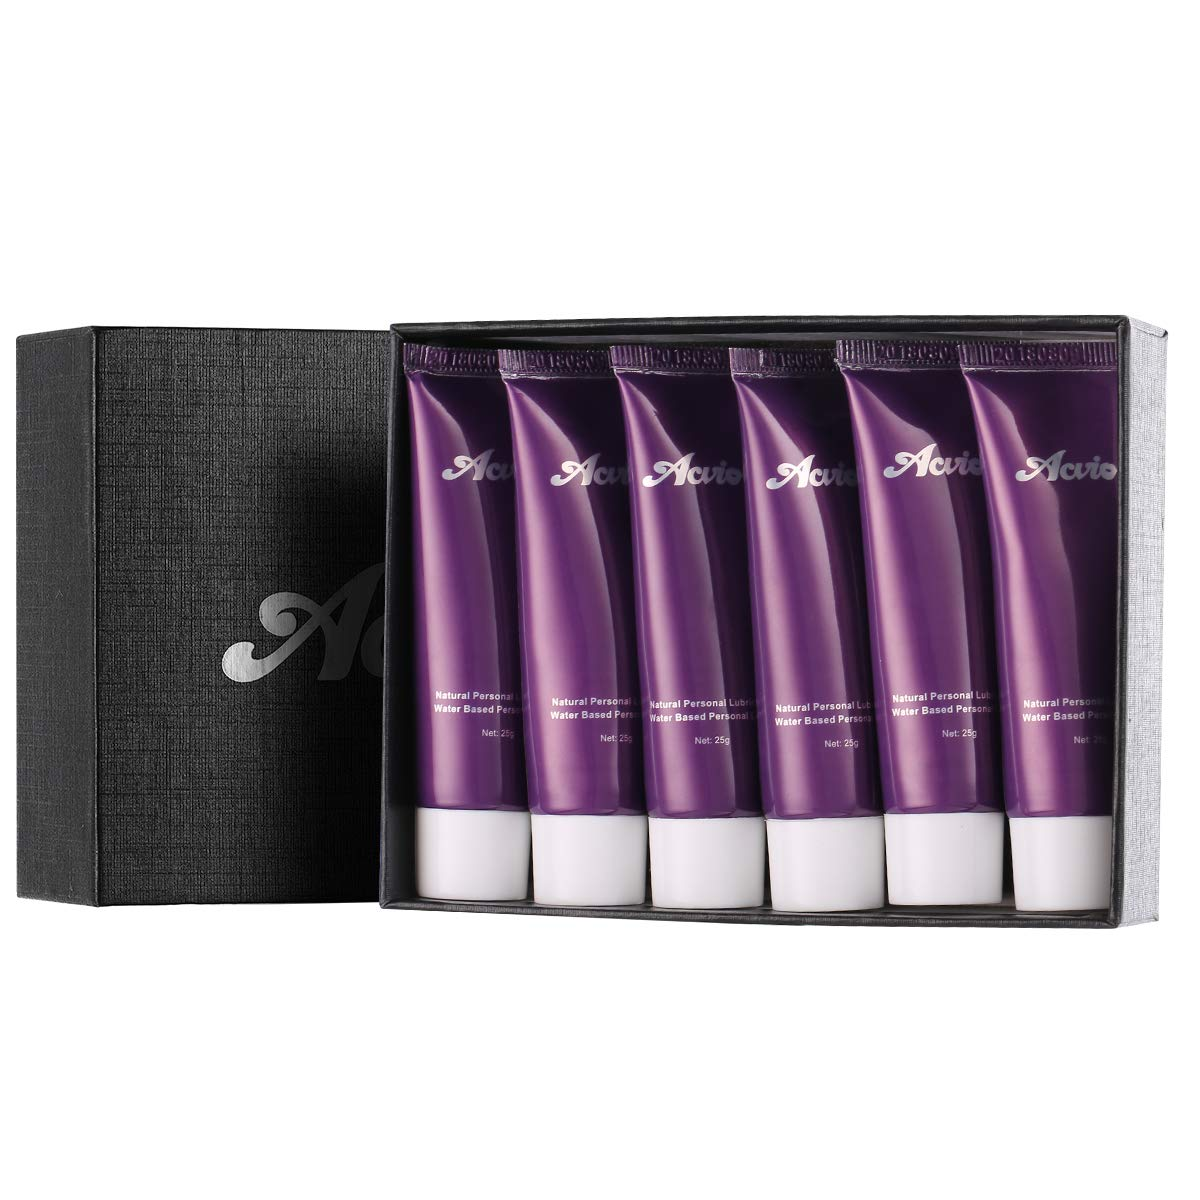 ACVIOO Natural Personal Lubricant Water Based